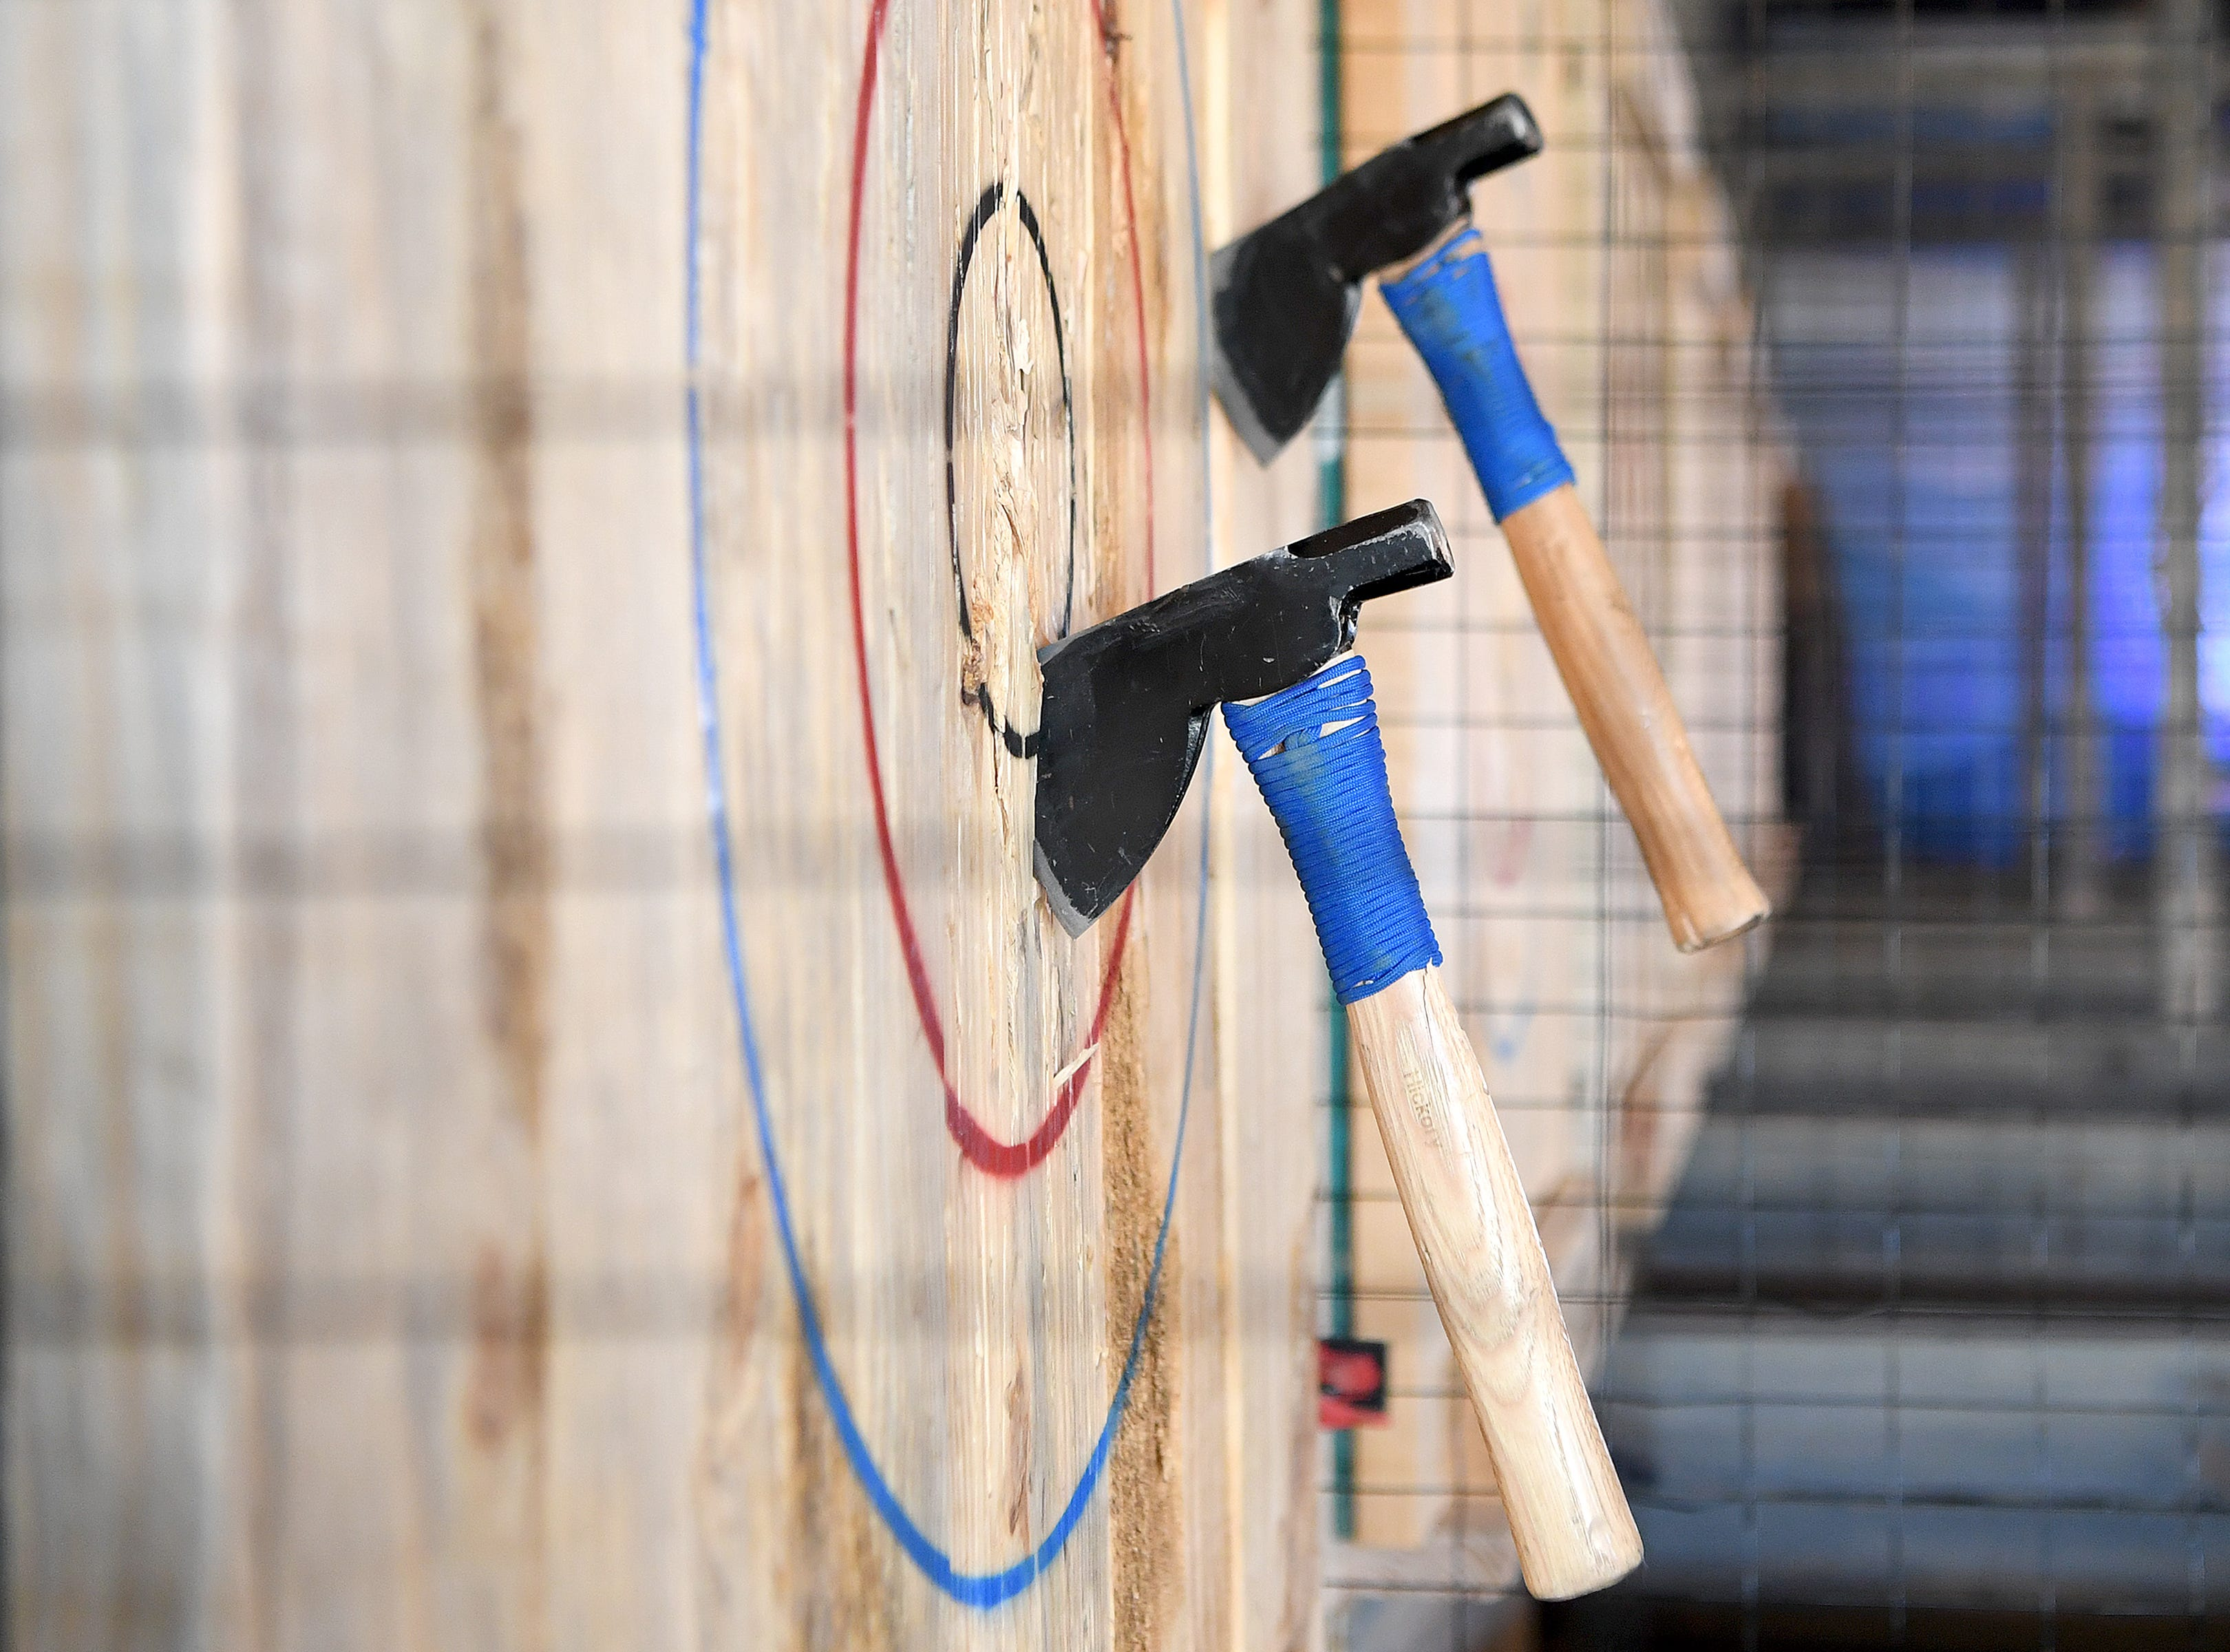 Axeville Throwing Club, Asheville's first ax throwing facility, is planning to open to the public in March.